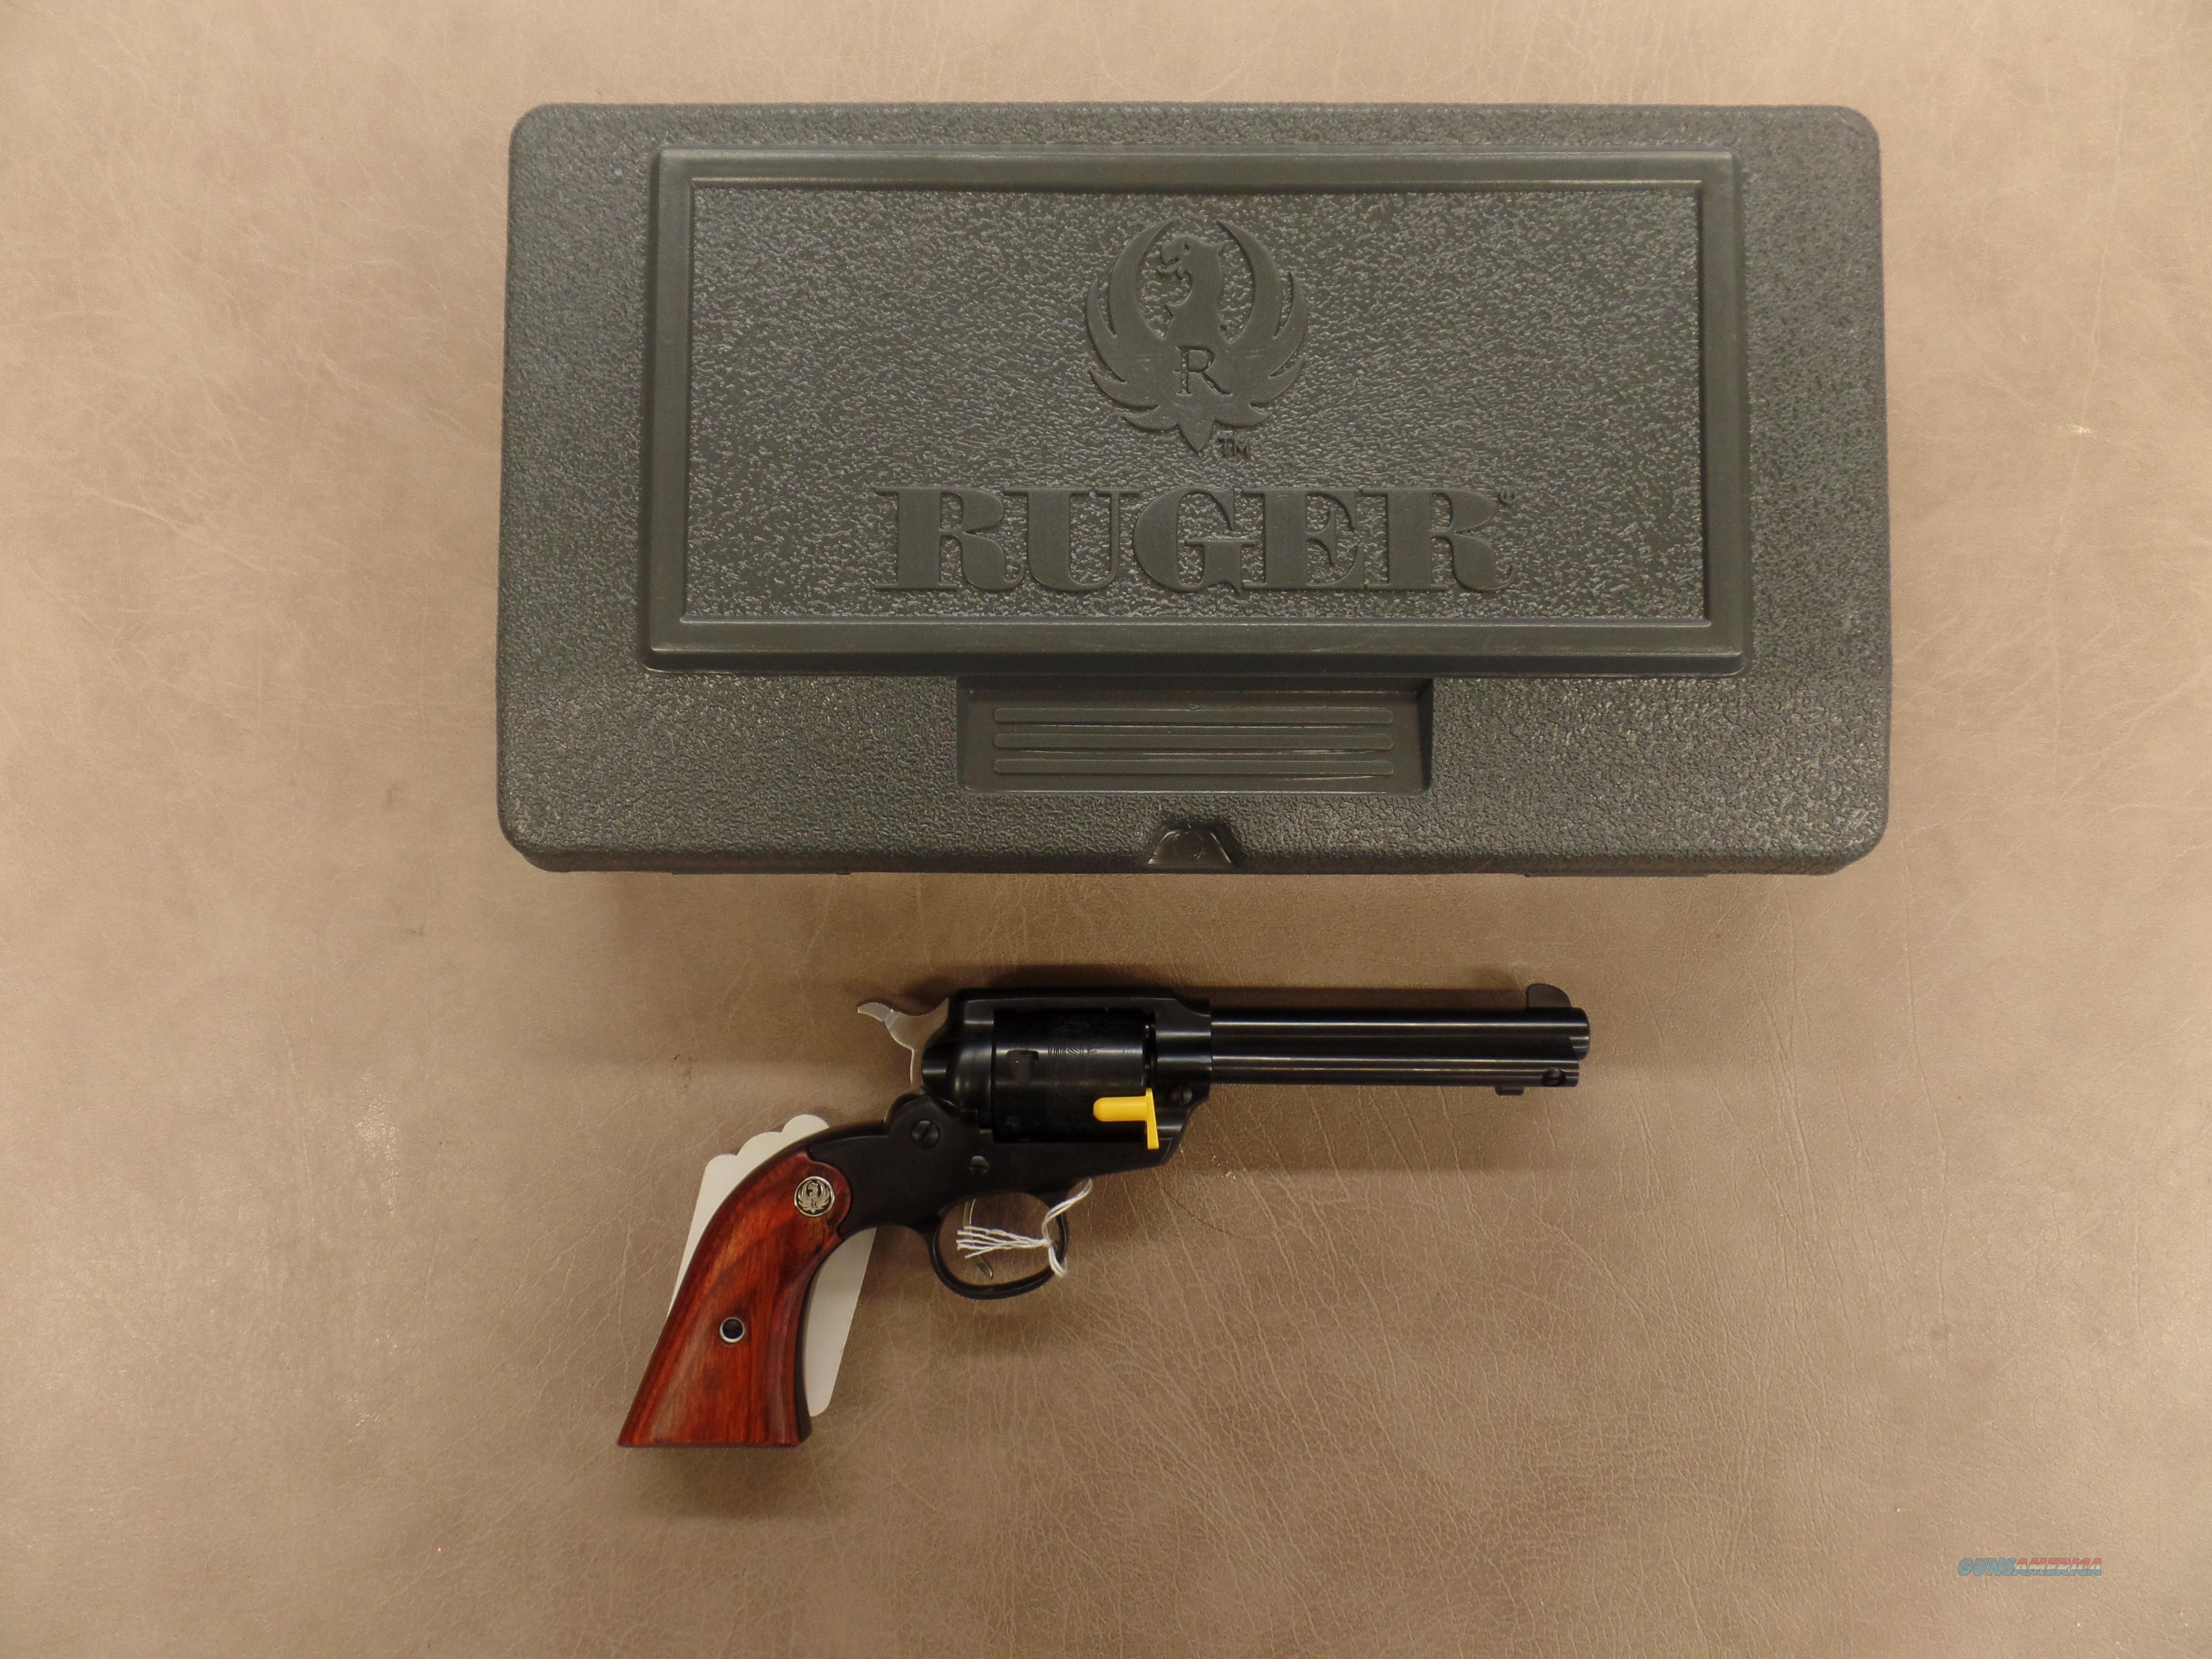 Ruger Bear Cat   Guns > Pistols > Ruger Single Action Revolvers > Bearcat